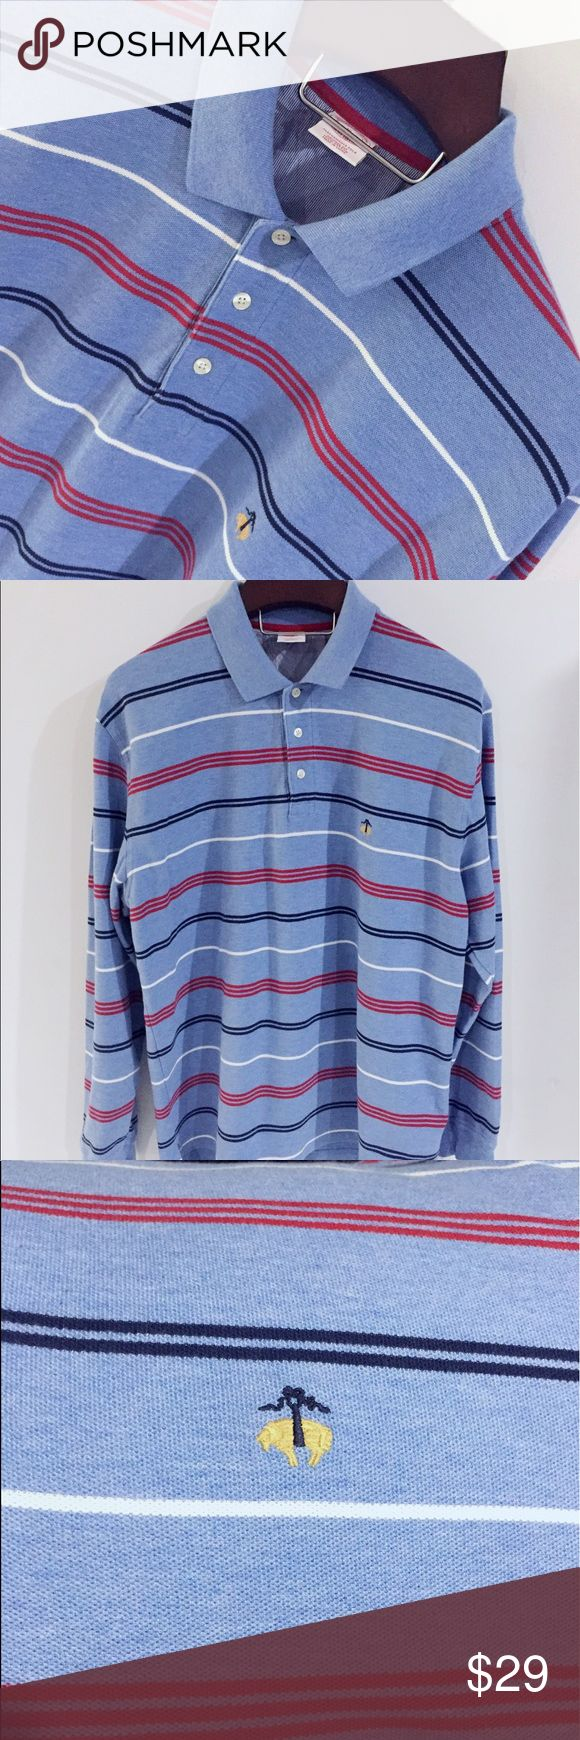 EUC Brooks Brothers long sleeve Polo Shirt size XL EXCELLENT used and cared for condition. Brooks Brothers long sleeve polo shirt. Med blue (almost Chambray in color) shirt with red, white, and navy blue stripes. Collared shirt. Three buttons. Cuffed sleeves. Size XL. MINT condition with no fading for visible damage or stains. Brooks Brothers Shirts Polos